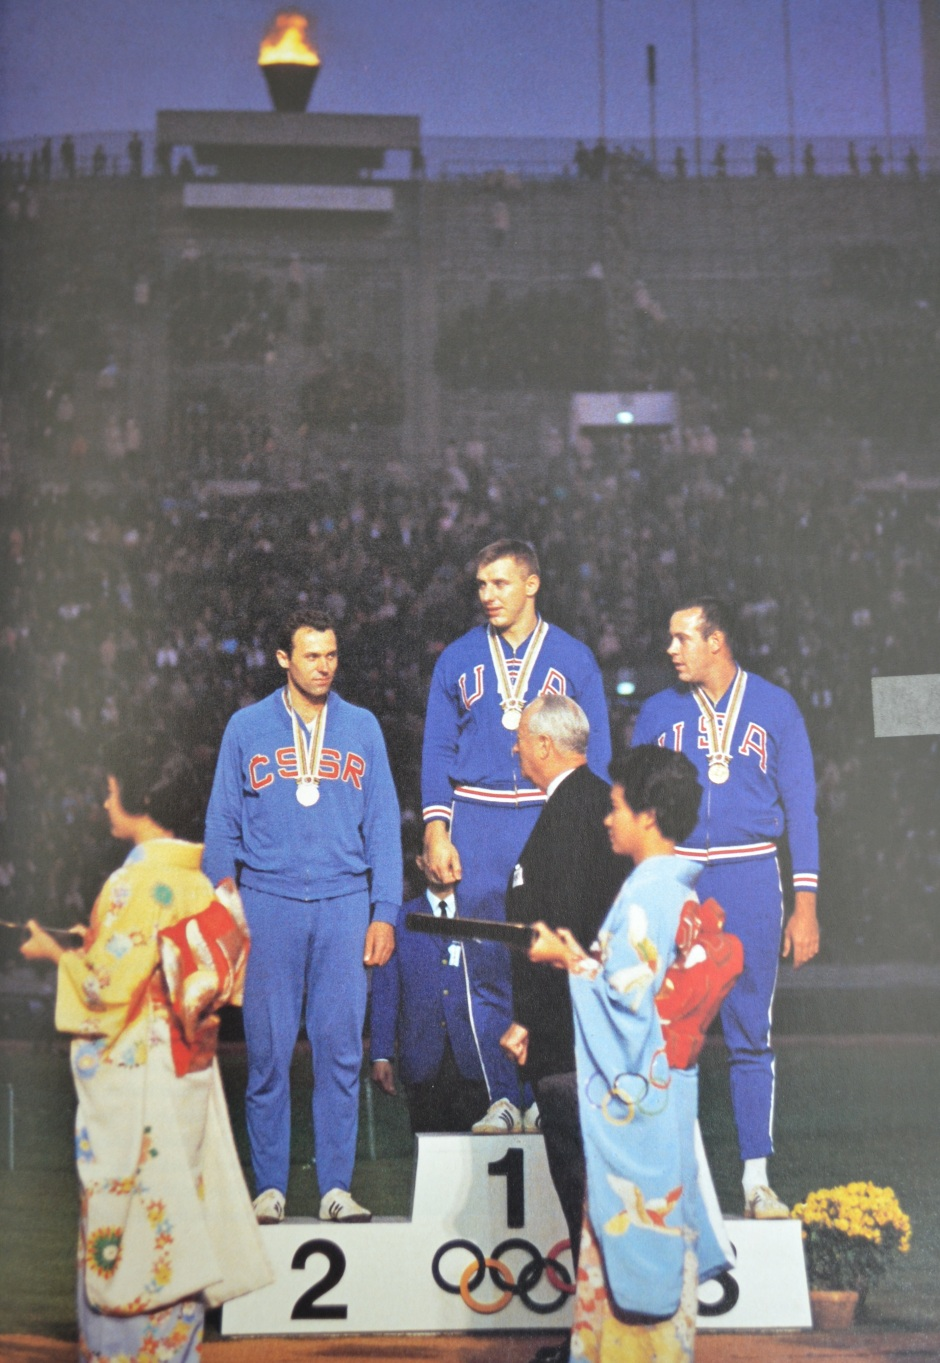 Al Oerter Getting His Gold Medal; from the book